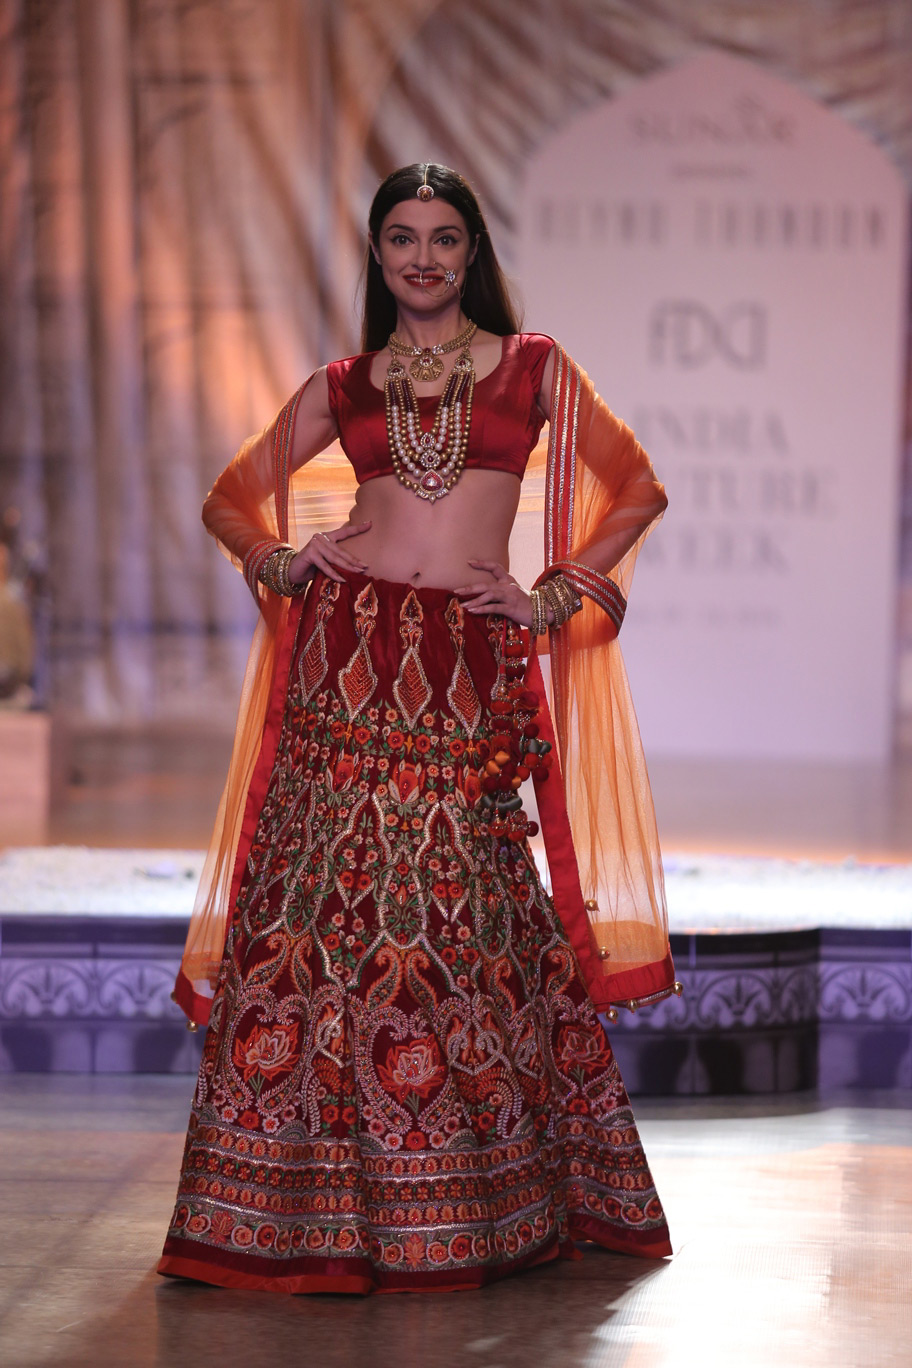 Actress-Divya-Kumar-Khosla-as-the-Showstopper-for-KAMANGIRI-By-Reynu-Taandon-In-Association-with-SUNAR-@-India-Couture-Week-16-(3)